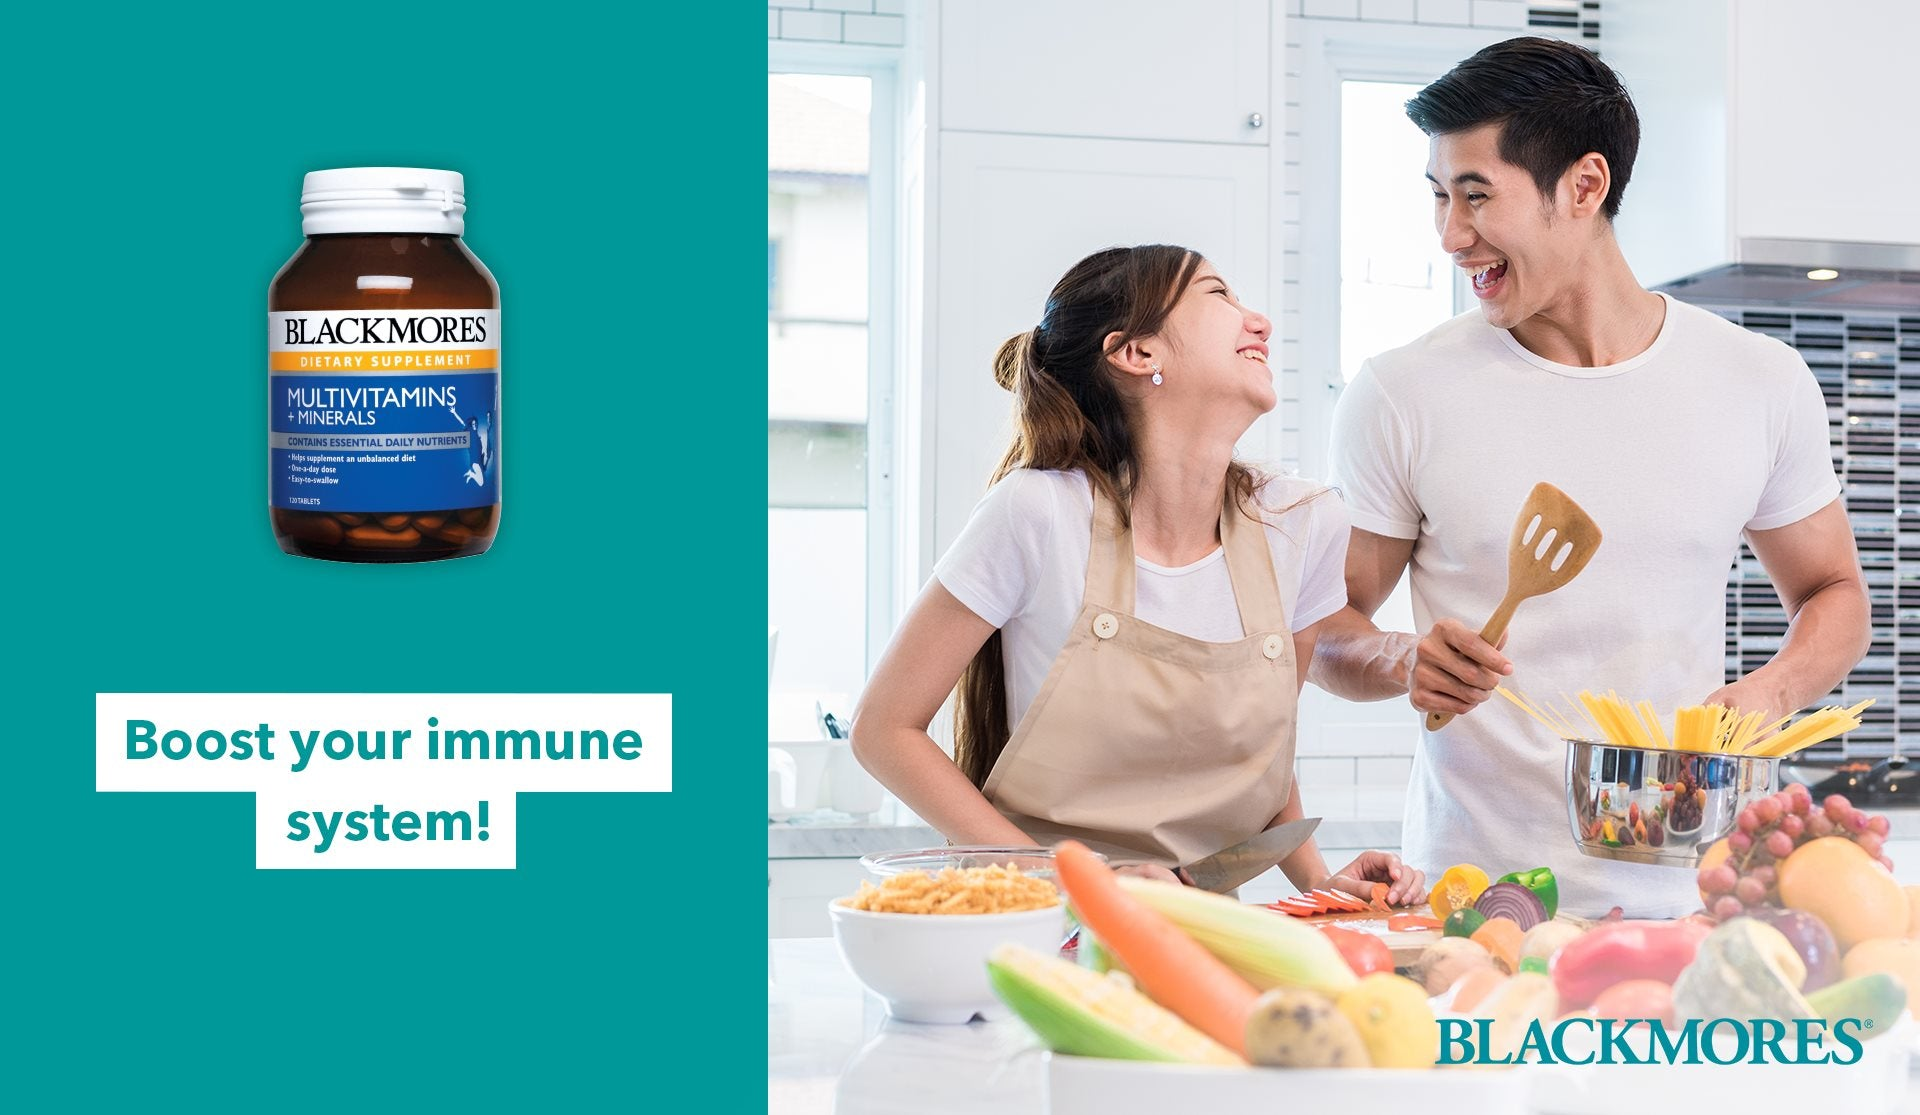 Blackmores Multivitamins + Minerals | Improve Immunity